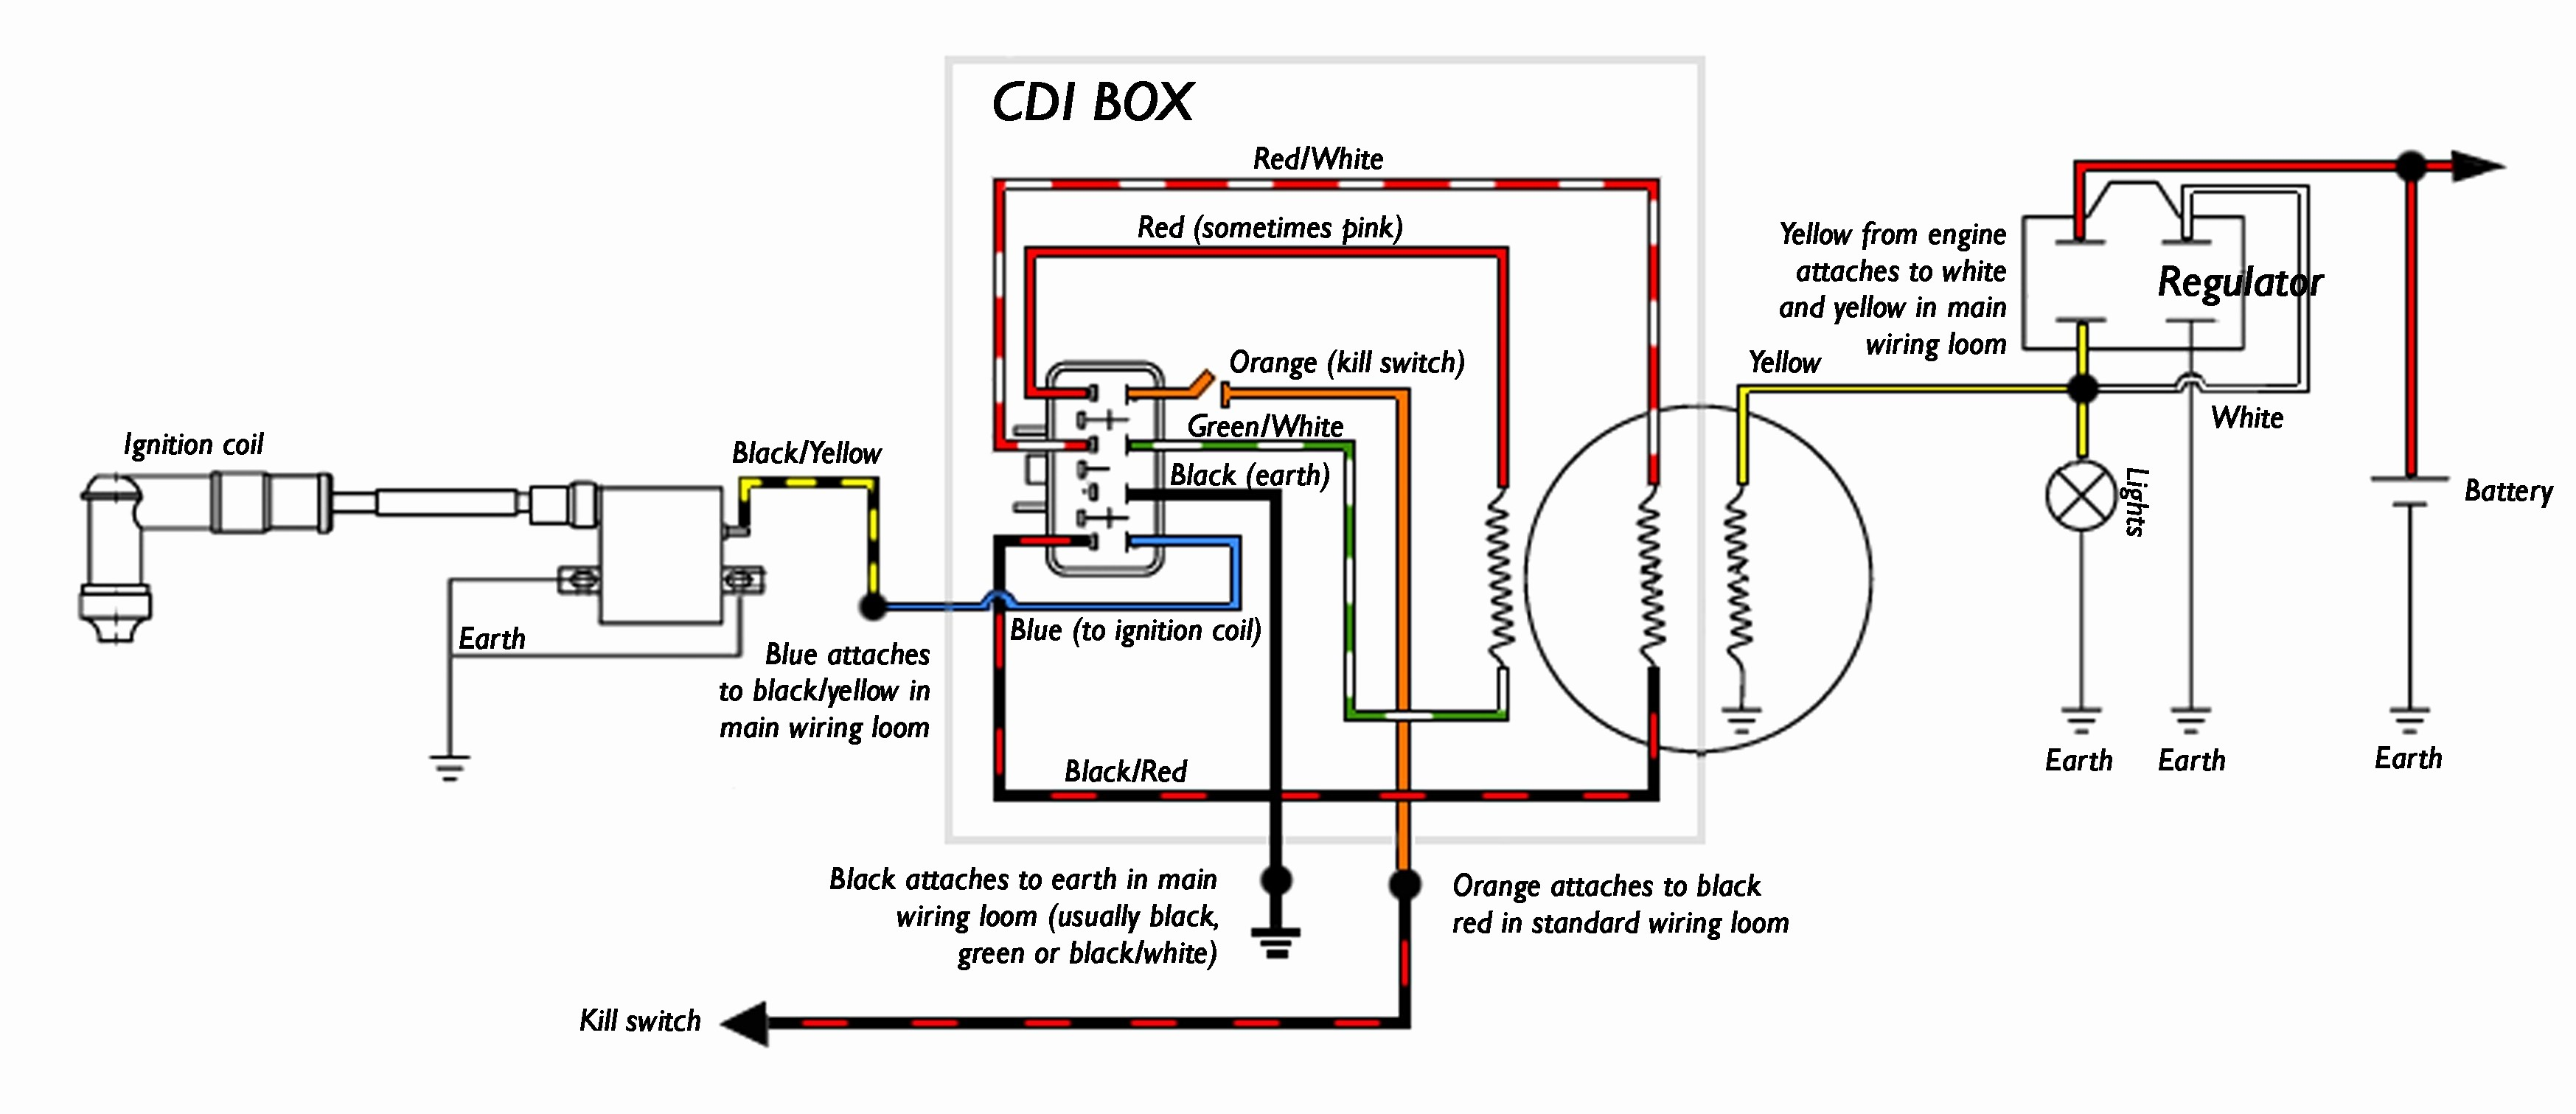 Diagram 6 Pin Cdi Box Wiring Diagram Full Version Hd Quality Wiring Diagram Diagramauto Quartiervoieverte Fr